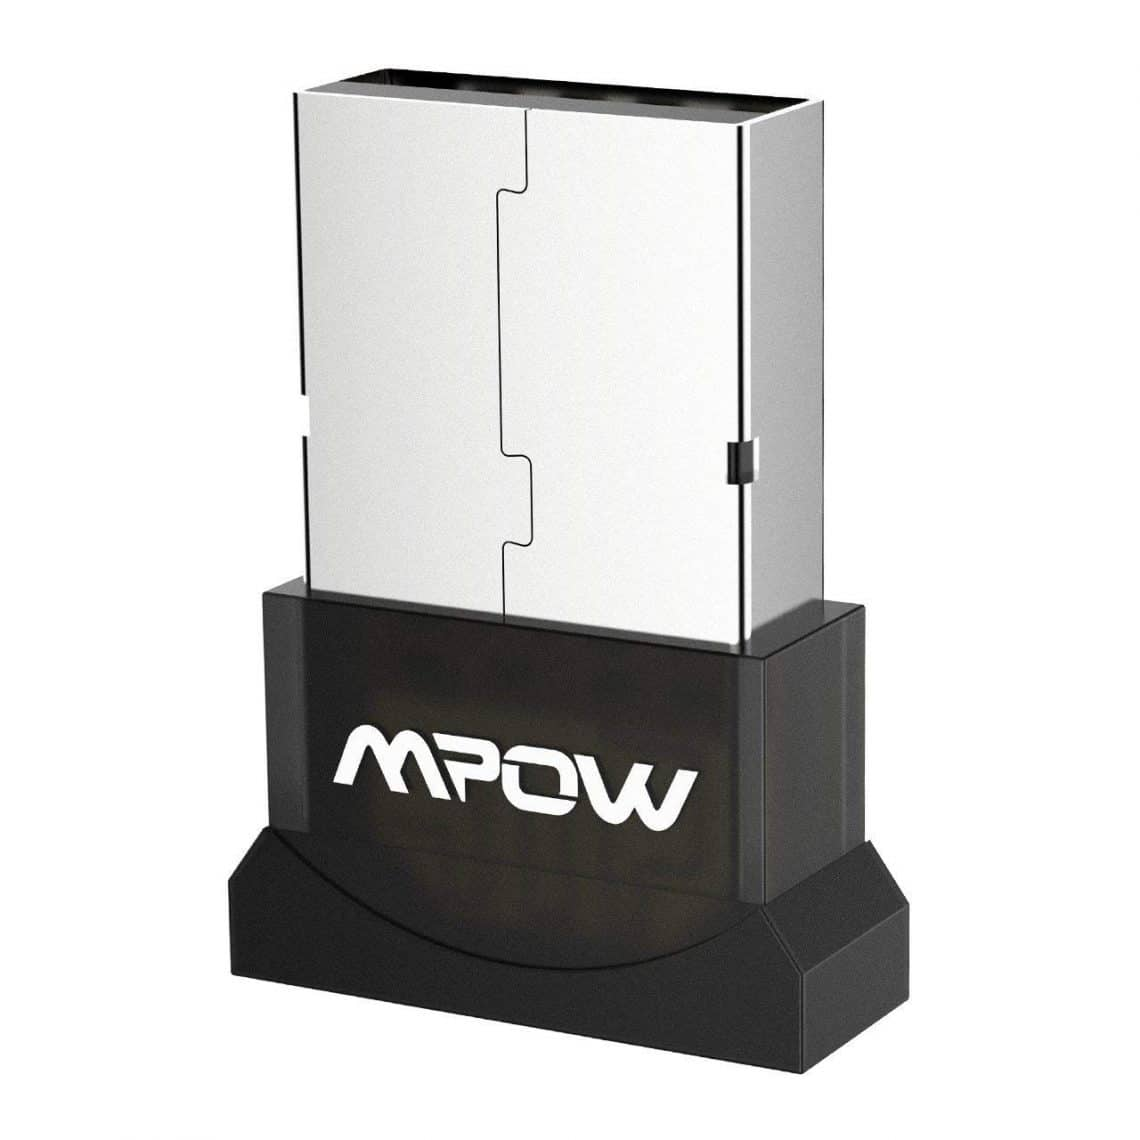 Mpow USB Bluetooth 4.0 Adapter